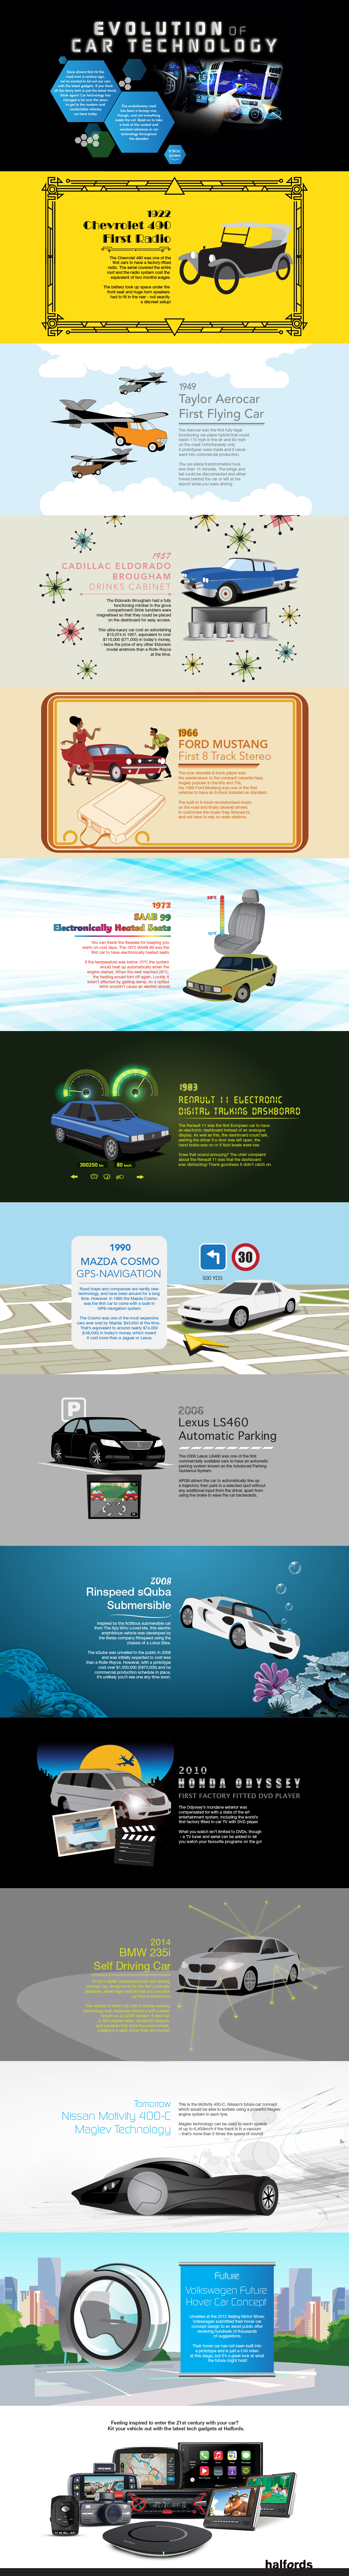 infographic, family car, children's entertainment. driving long distances with children, in-car technology, stereo, computer, sat-nav,